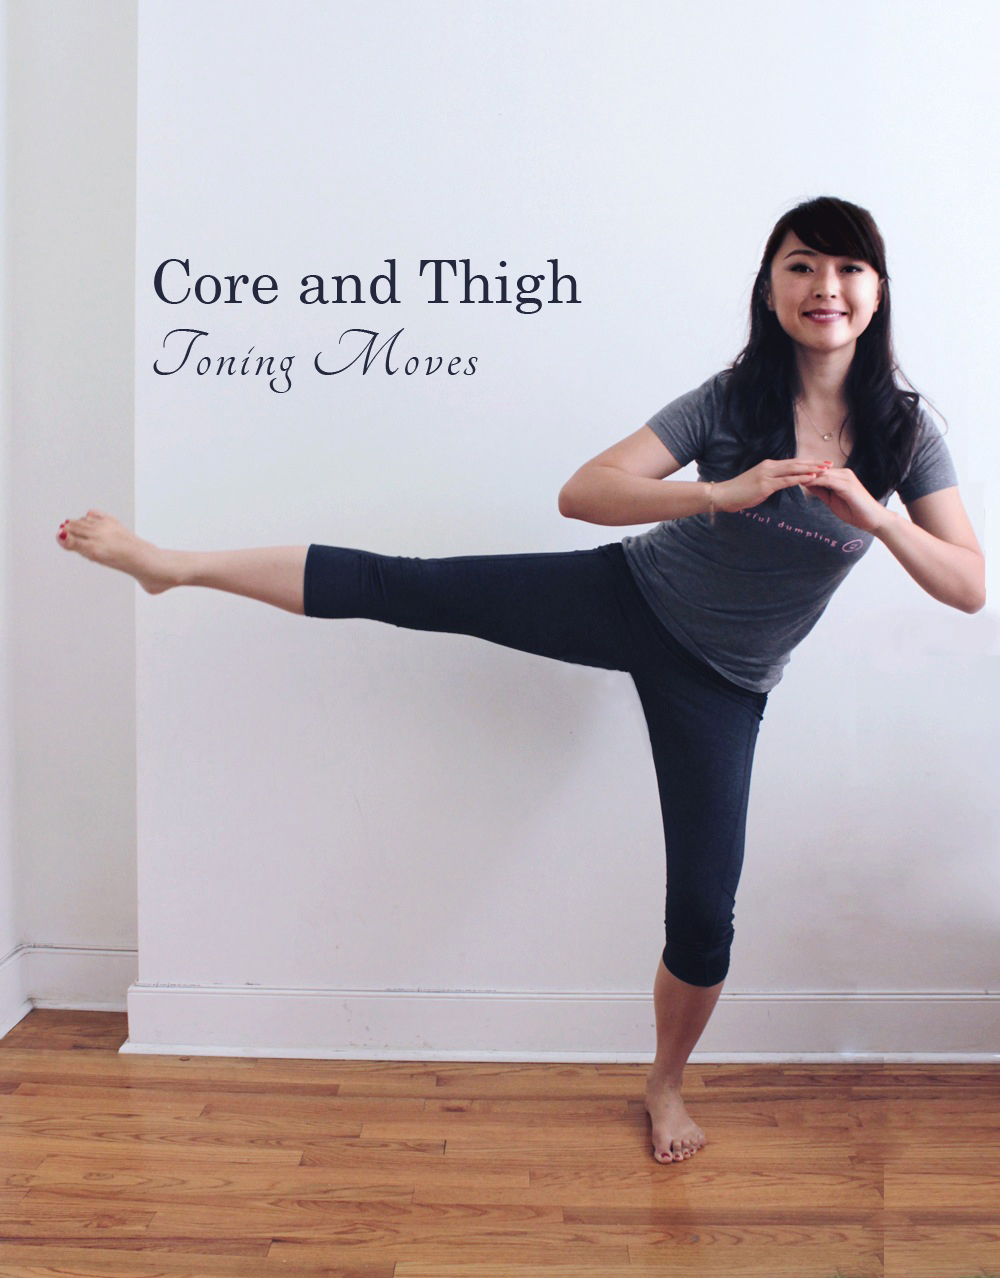 4 Toning Core and Thigh Moves